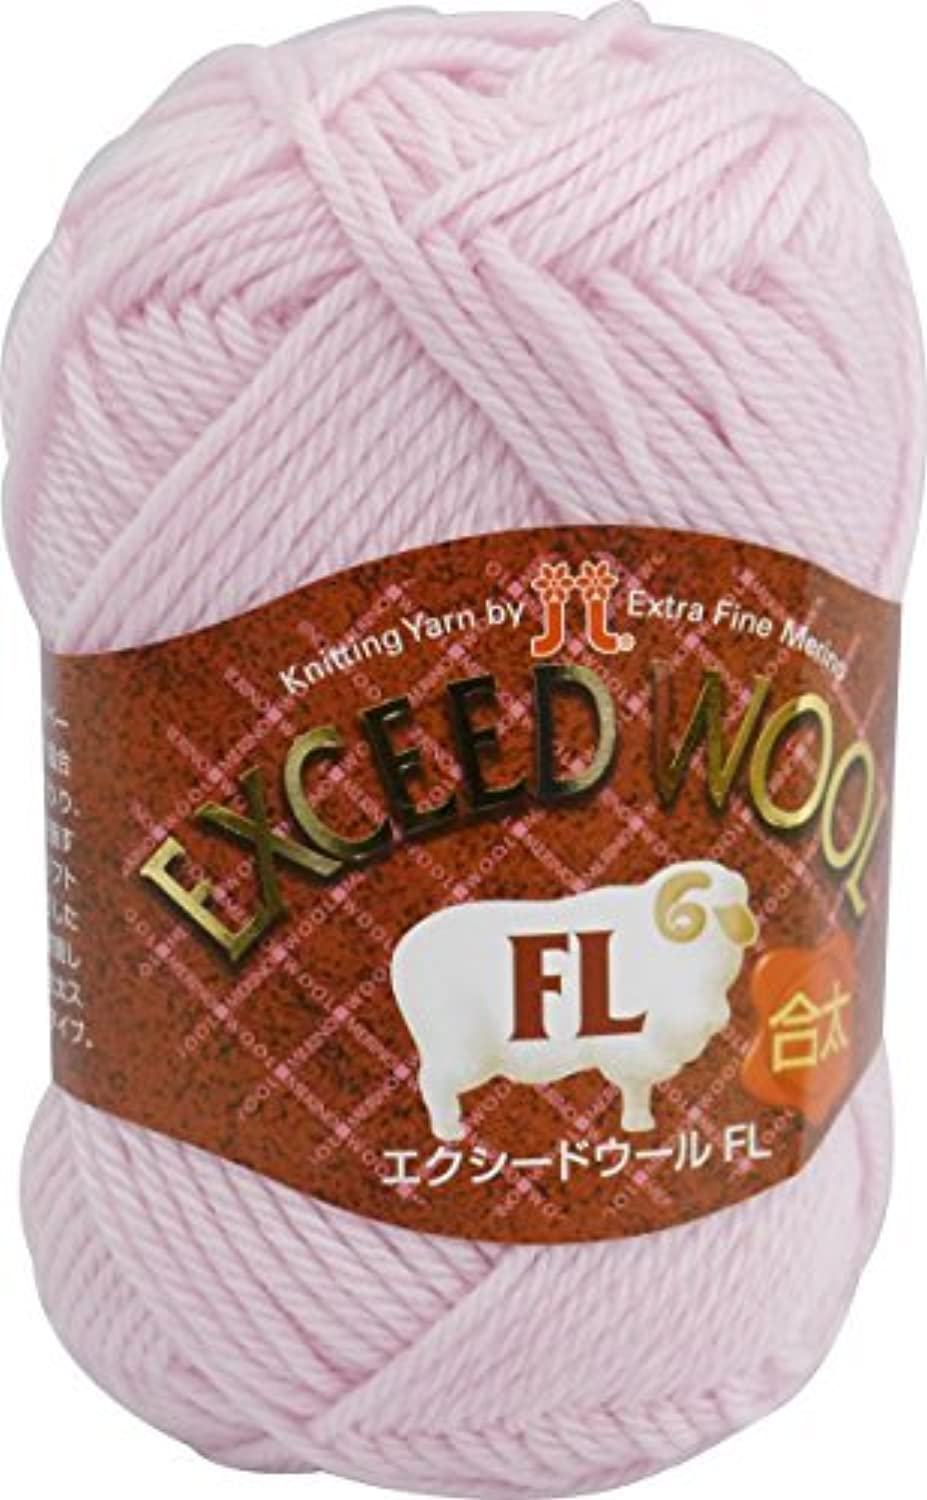 Exceed wool FL (joint) 40 g 120 m 5 pieces